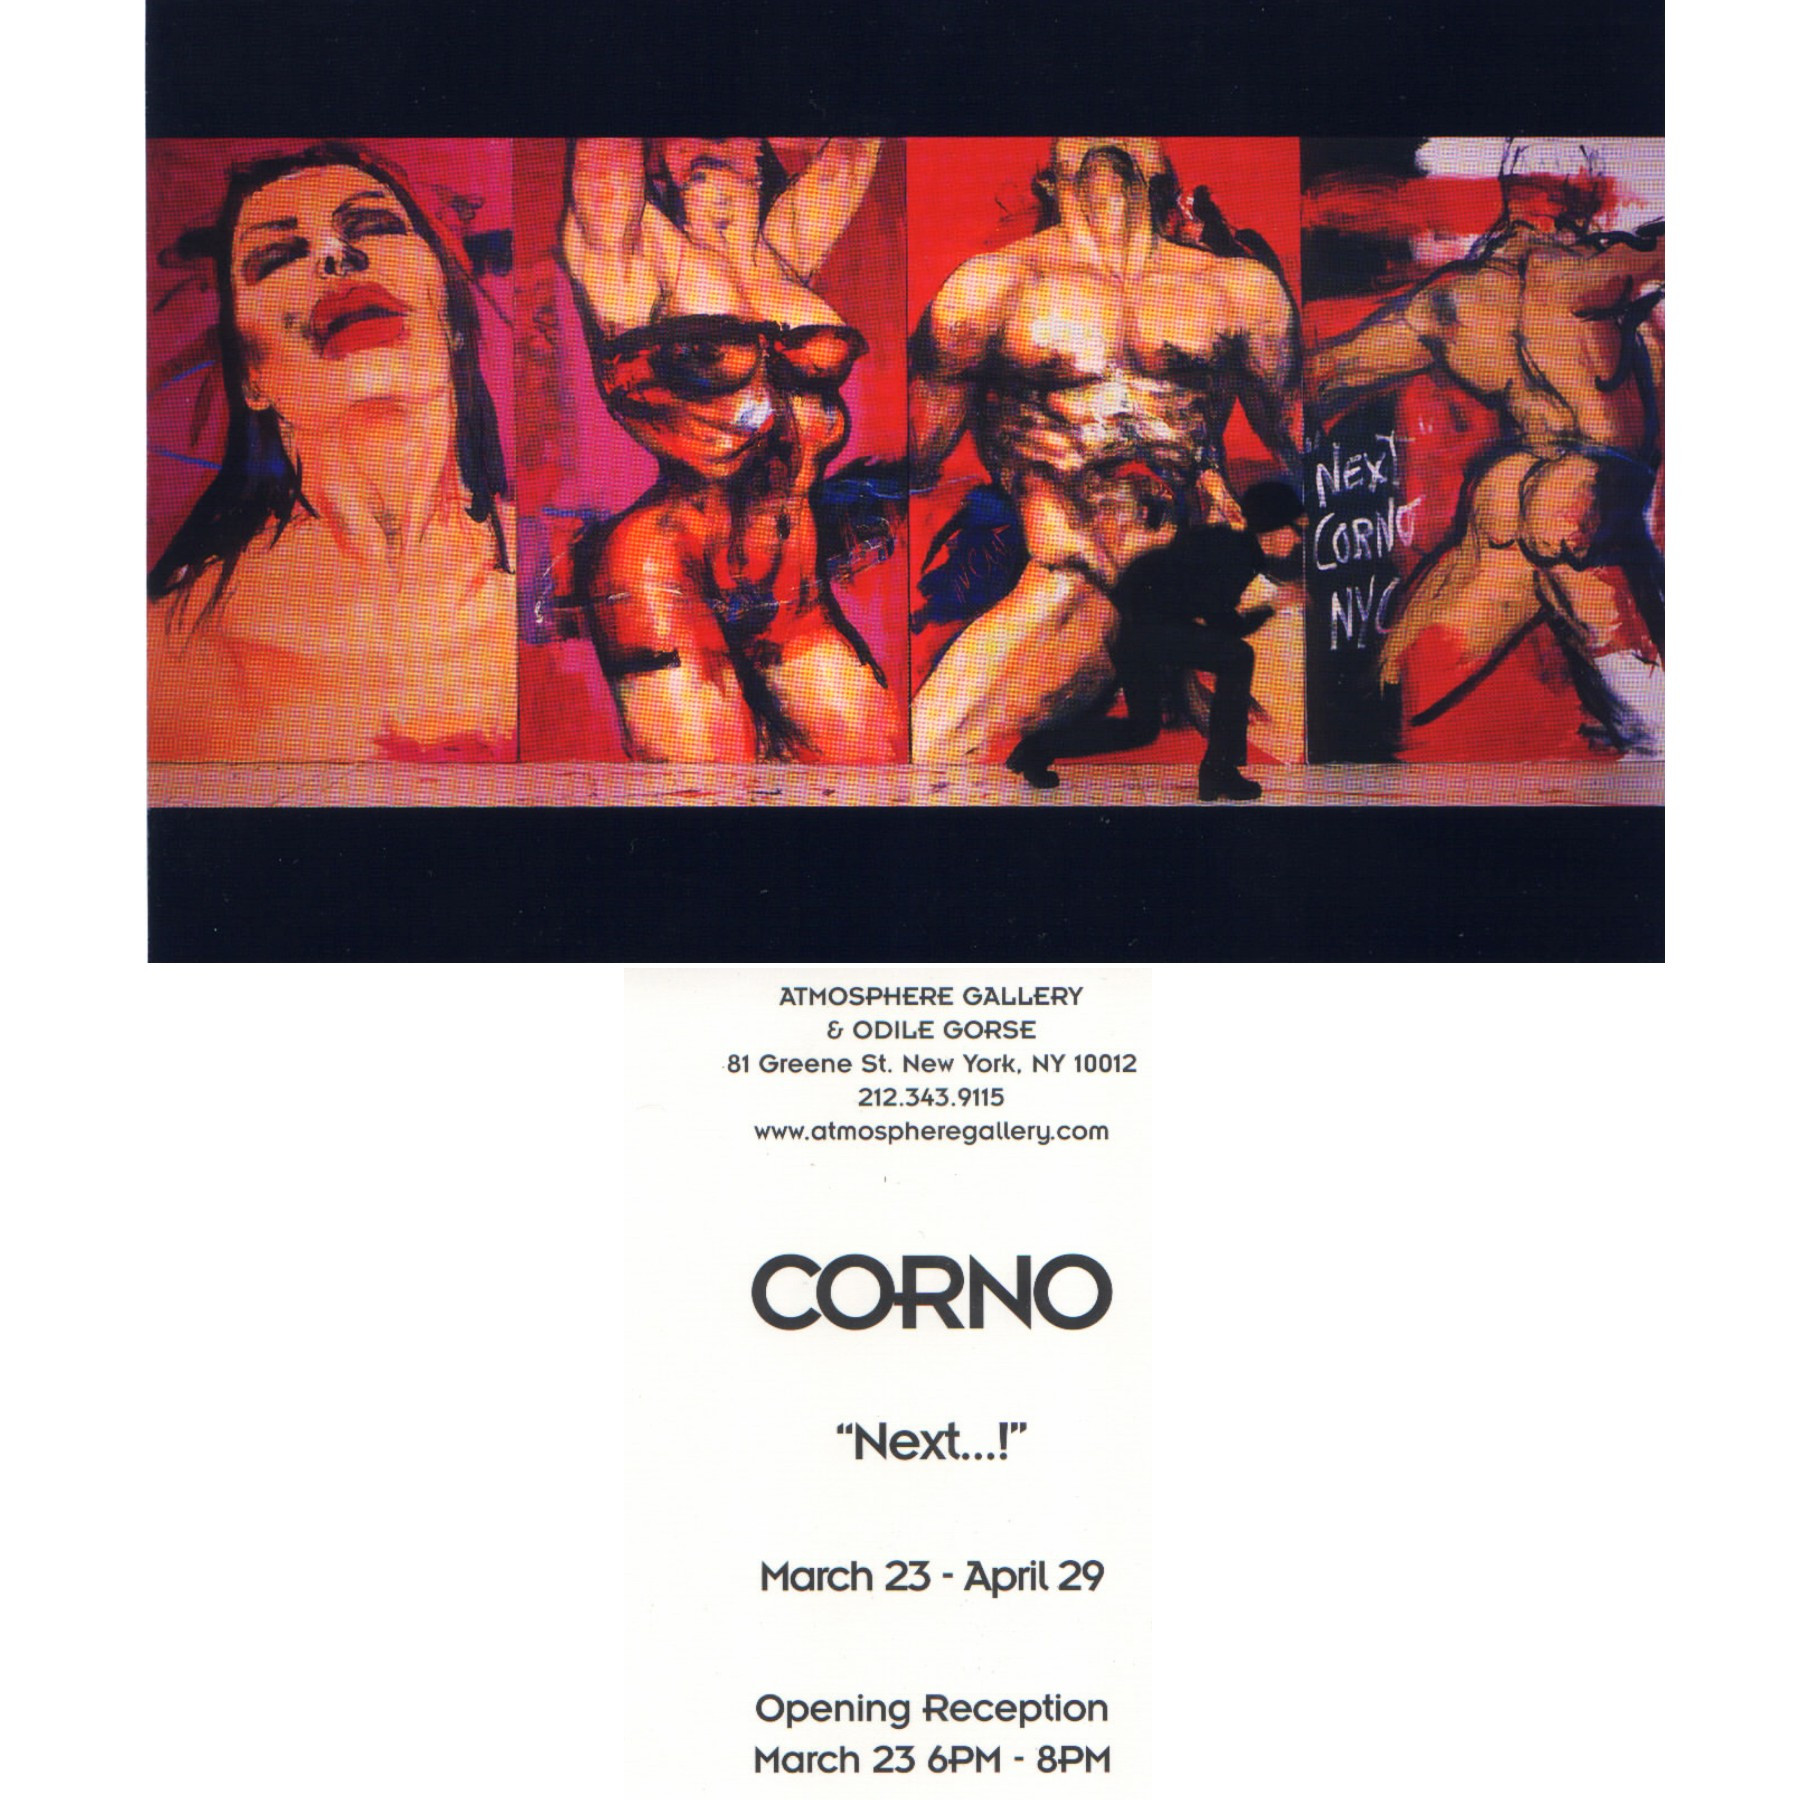 CORNO at Atmosphere Gallery